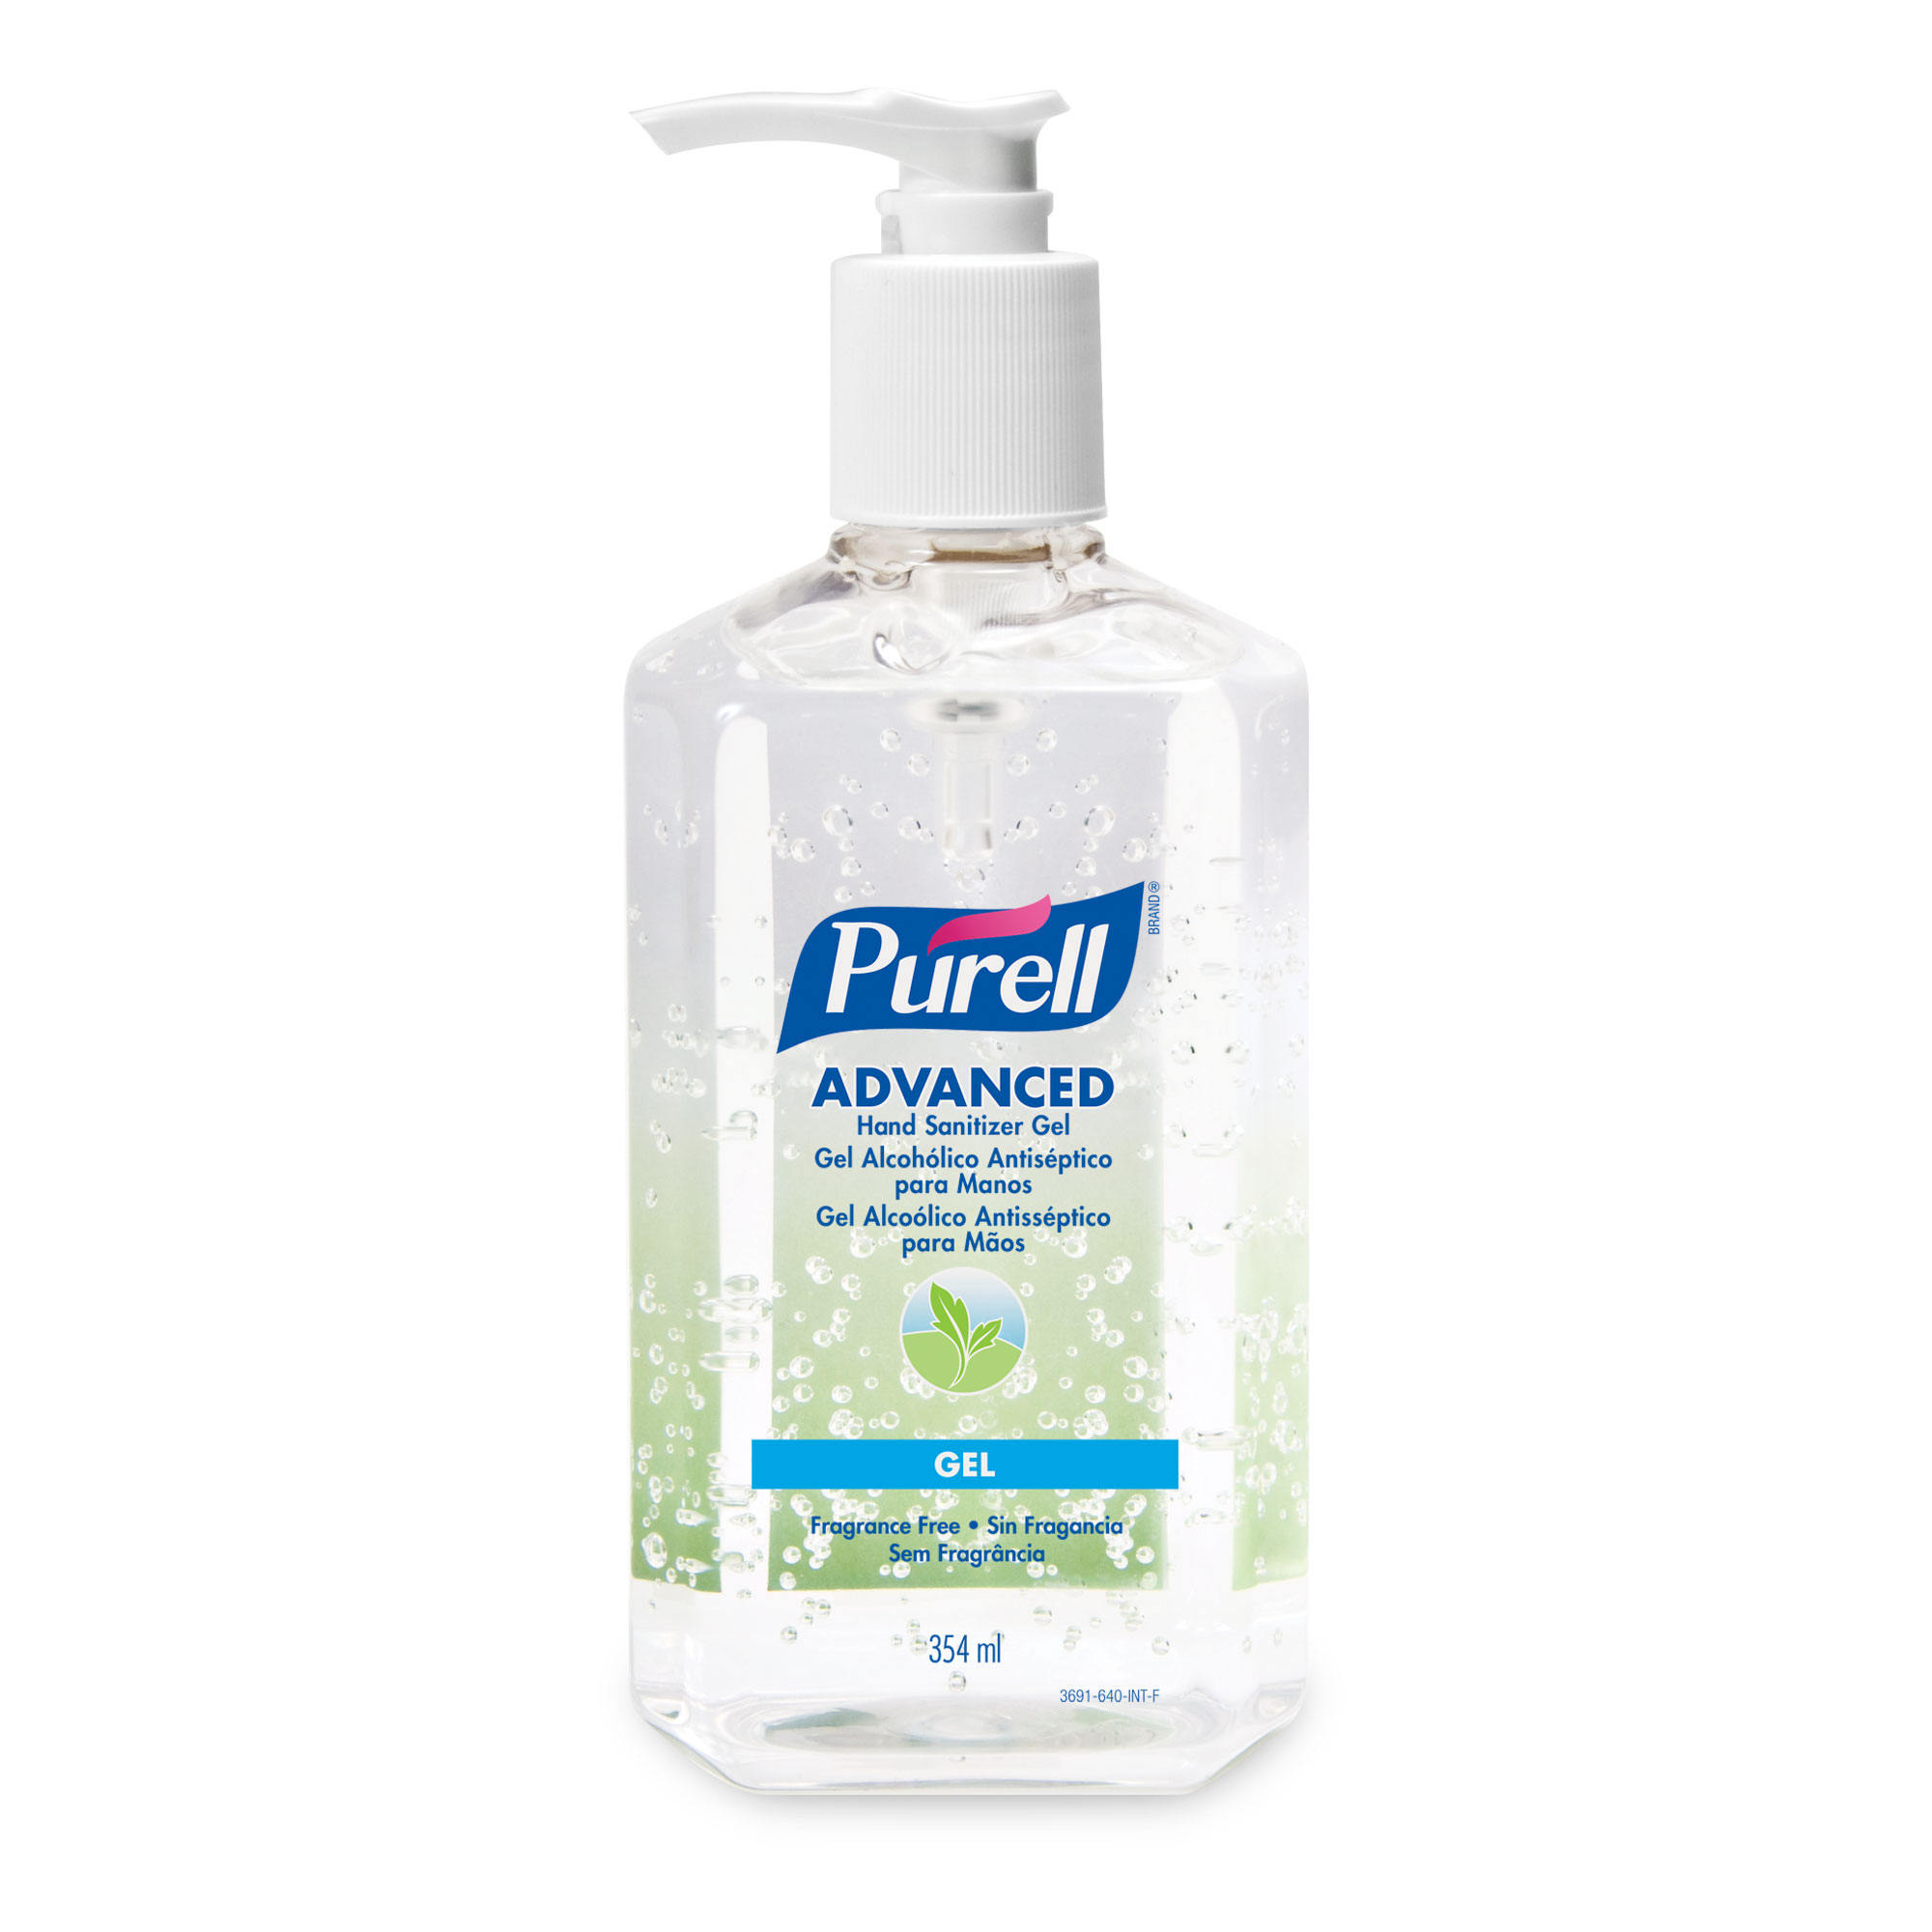 Gel antisséptico Purell 354ml